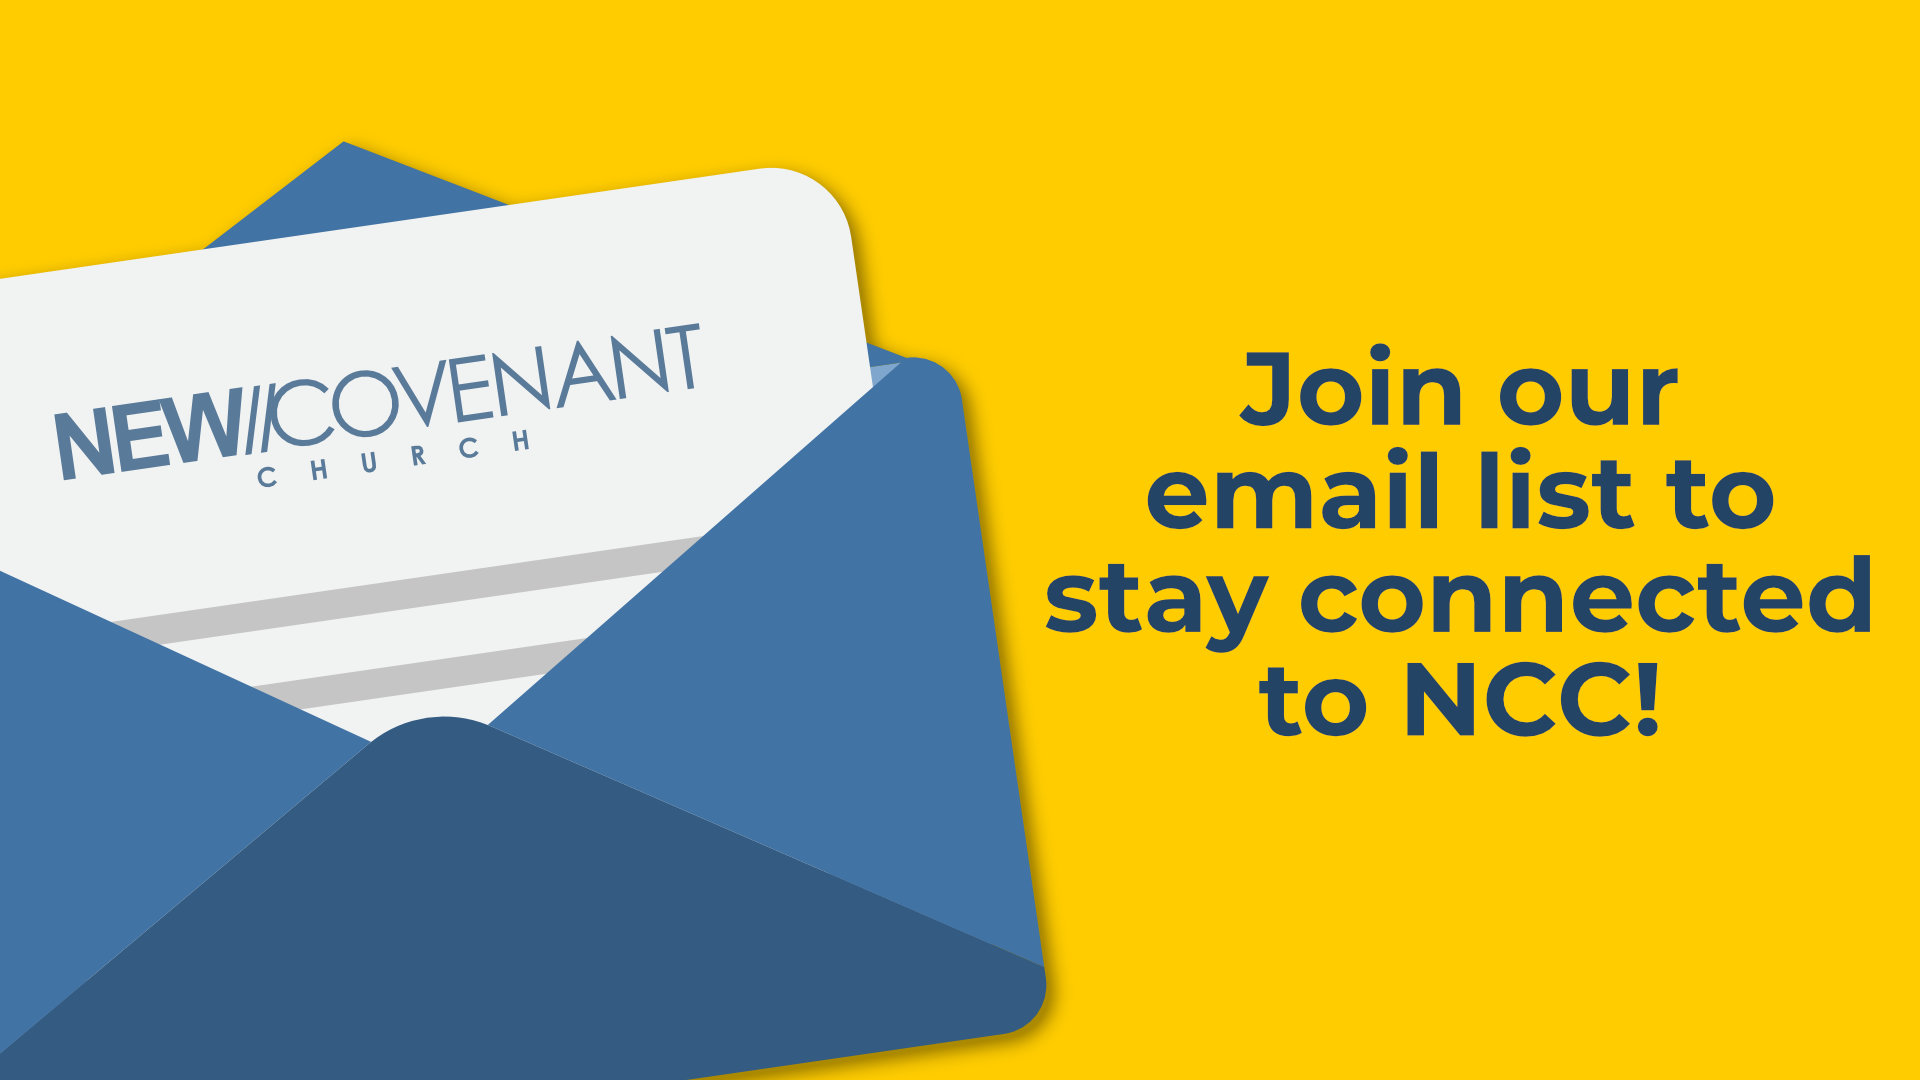 Join our email list to stay connected to NCC